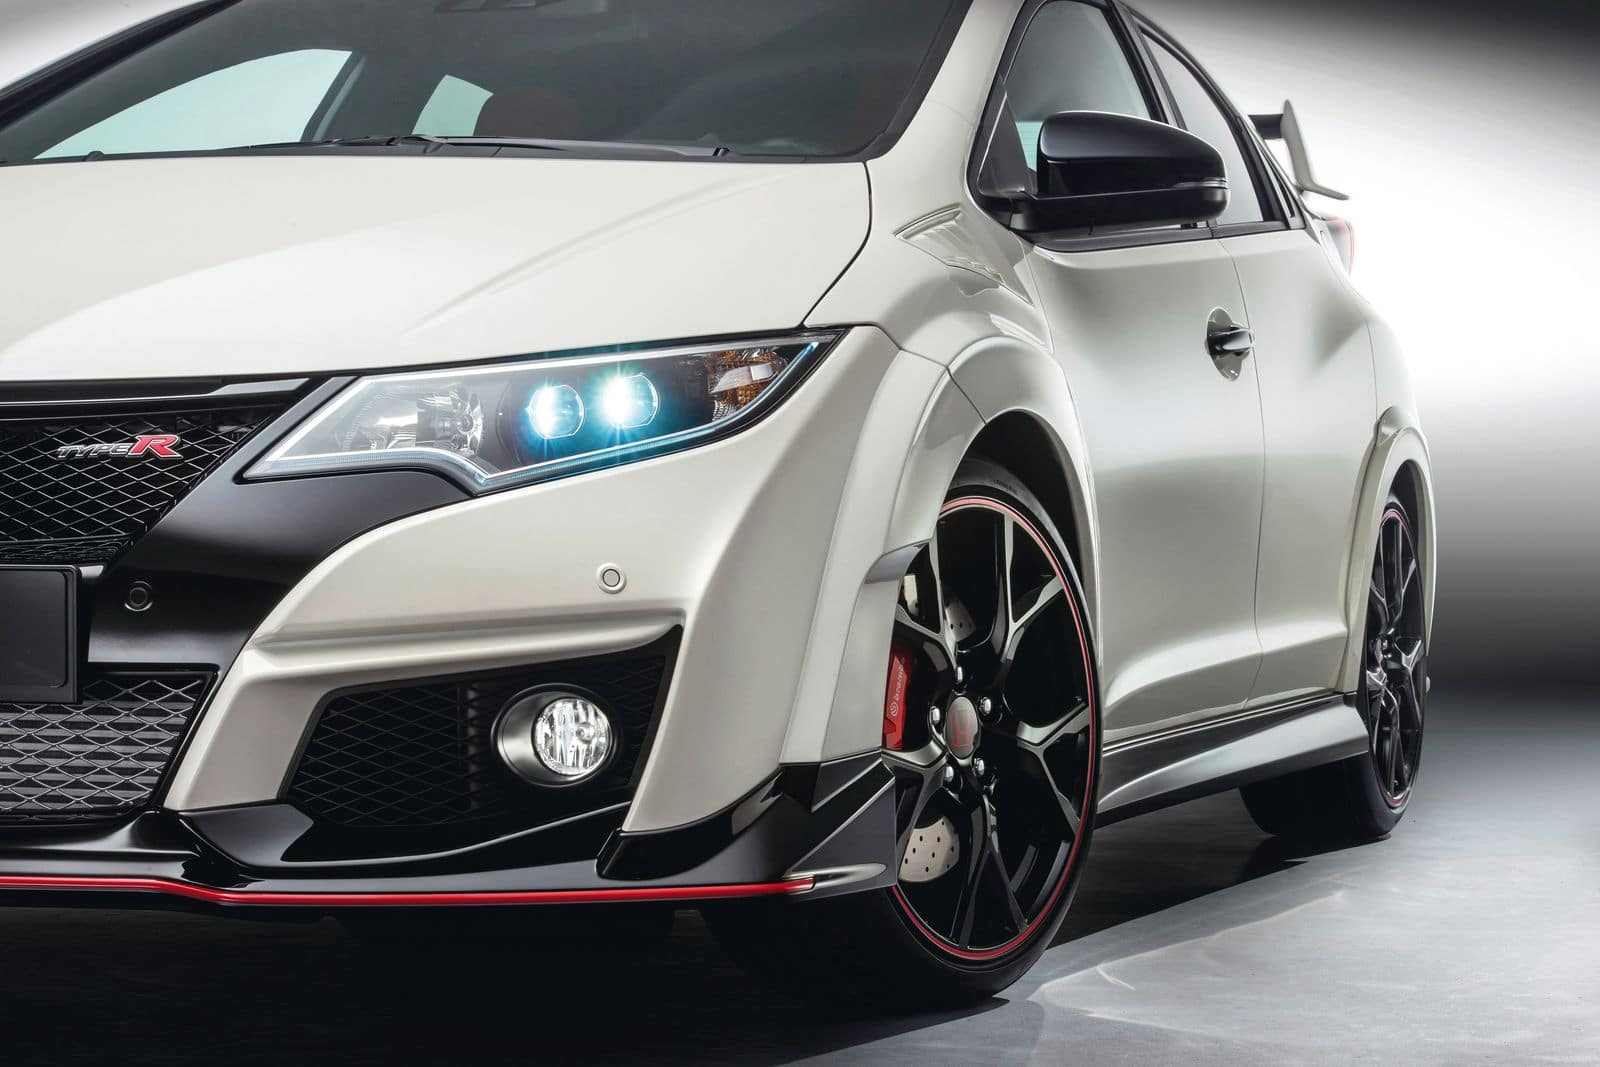 la nouvelle honda civic type r fait trembler la concurrence. Black Bedroom Furniture Sets. Home Design Ideas